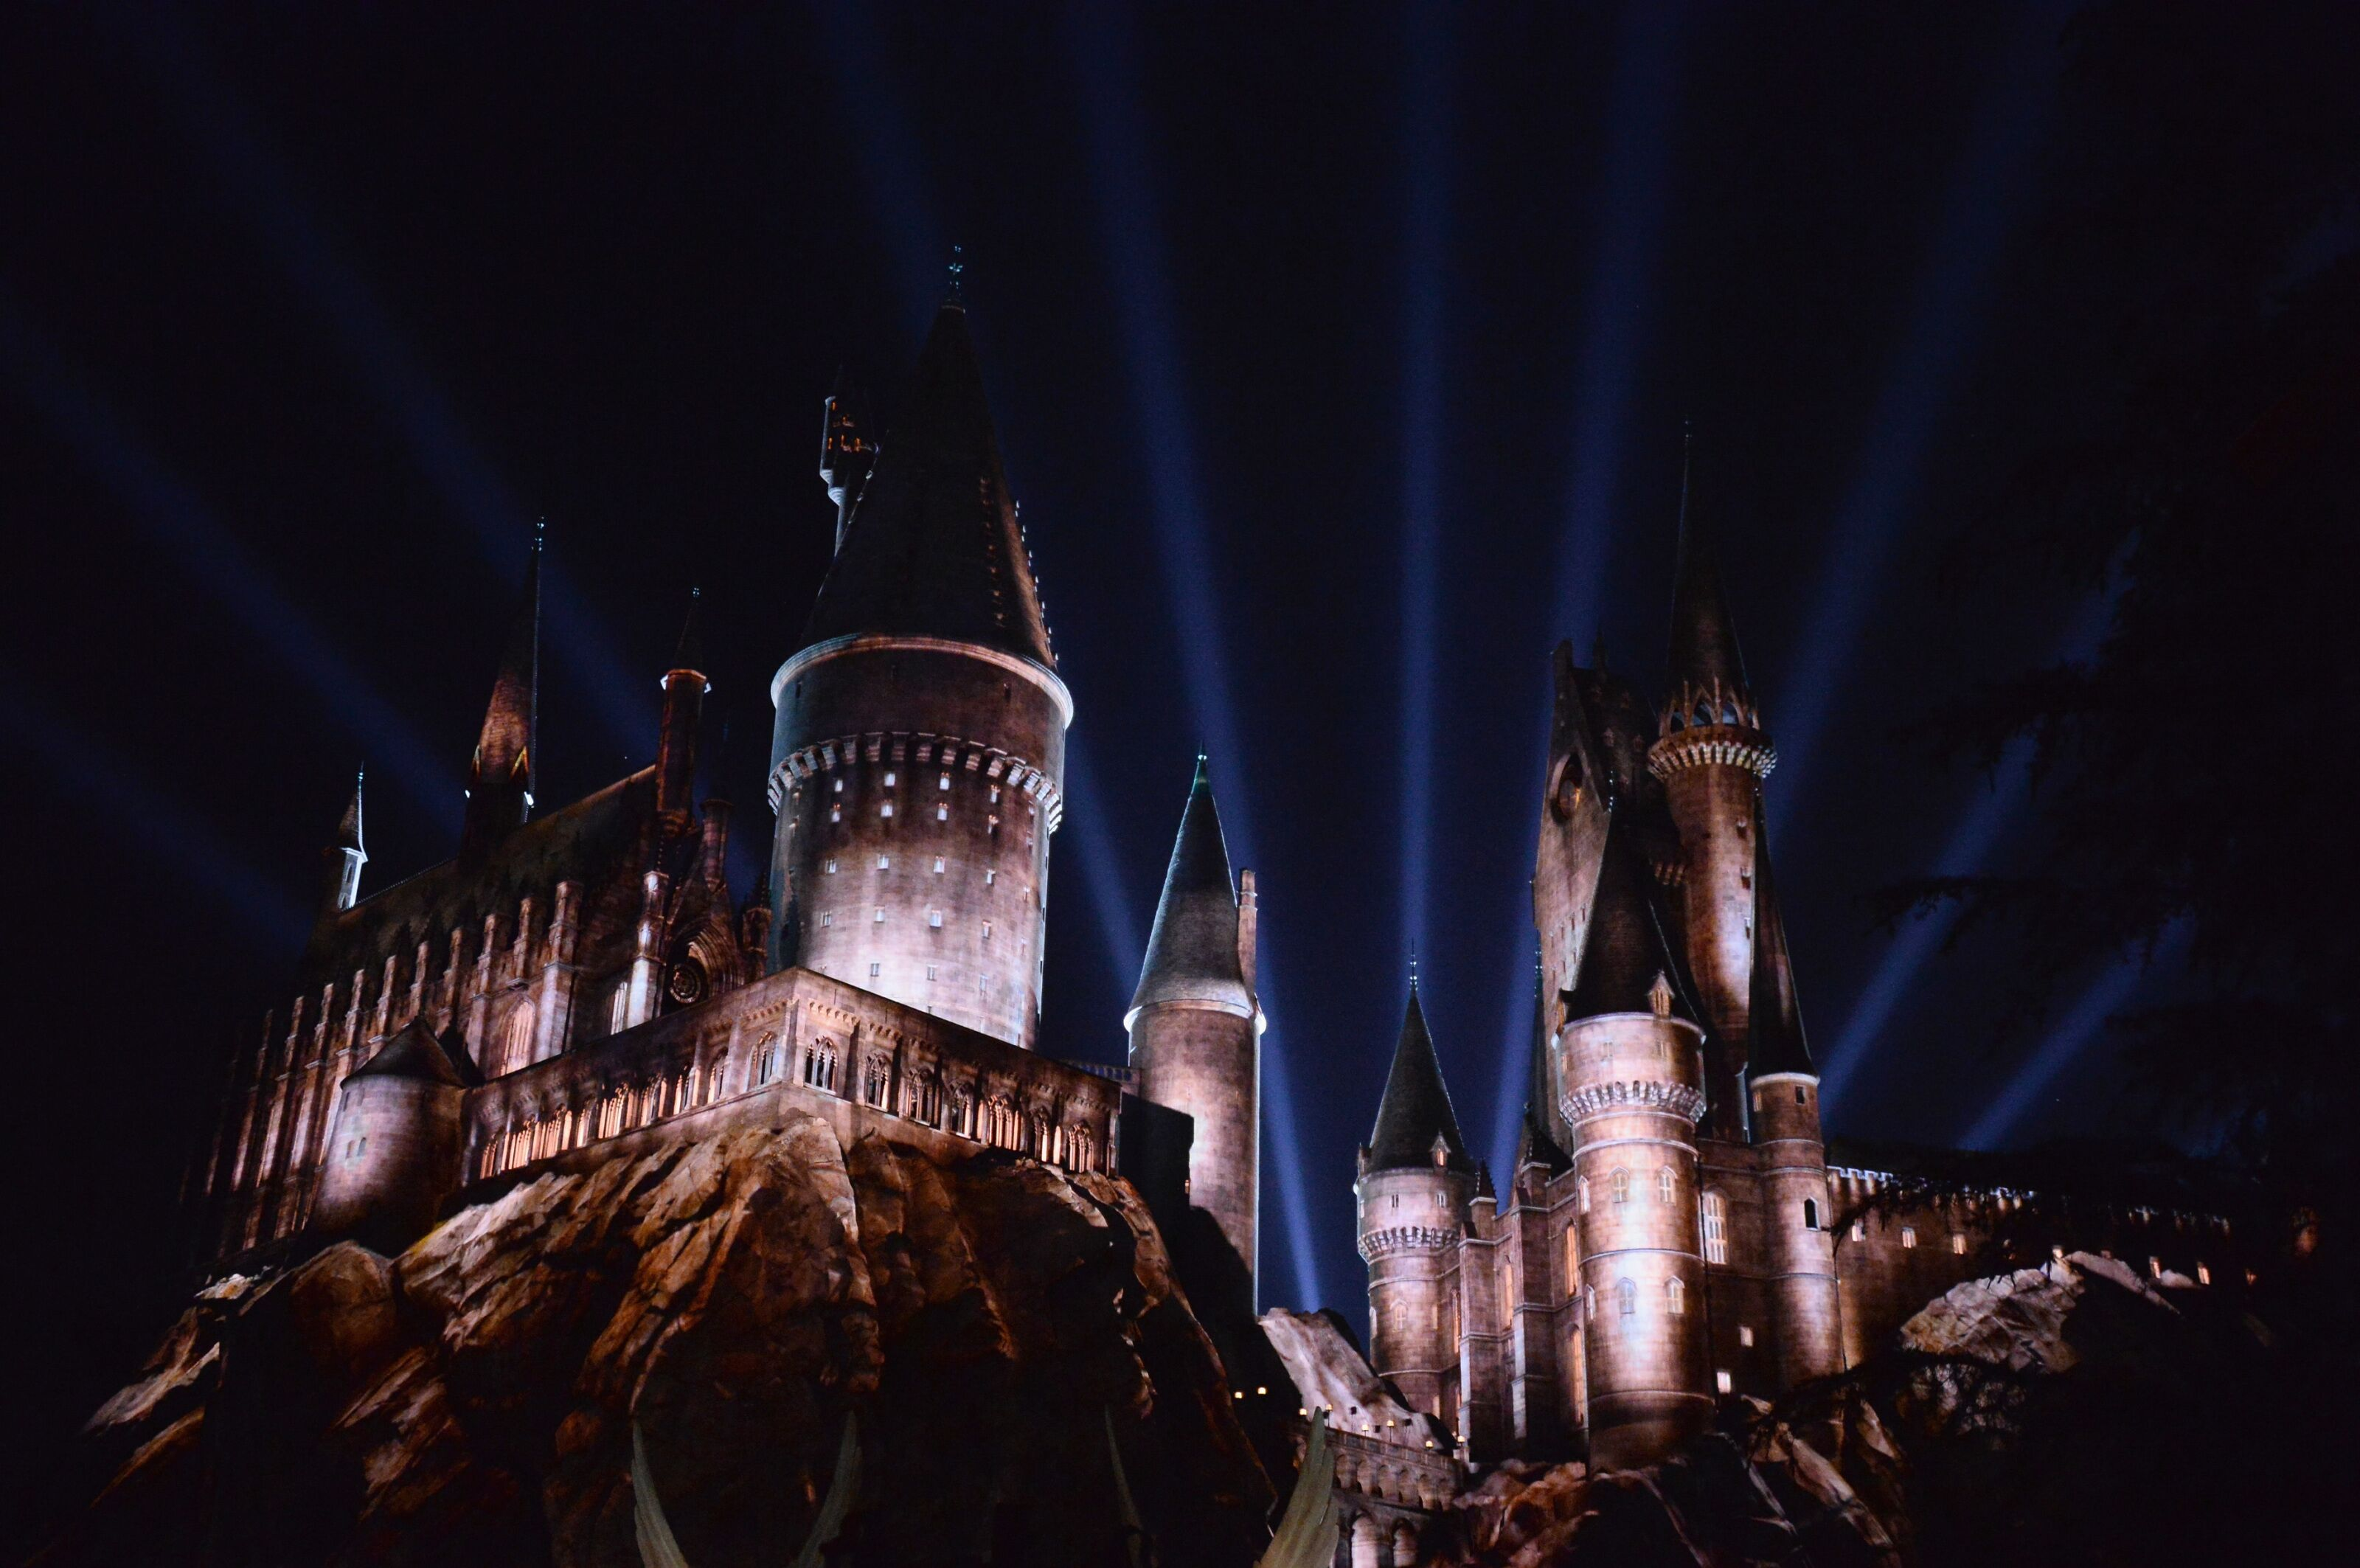 15 of the weirdest Wizarding World facts we learned from Pottermore